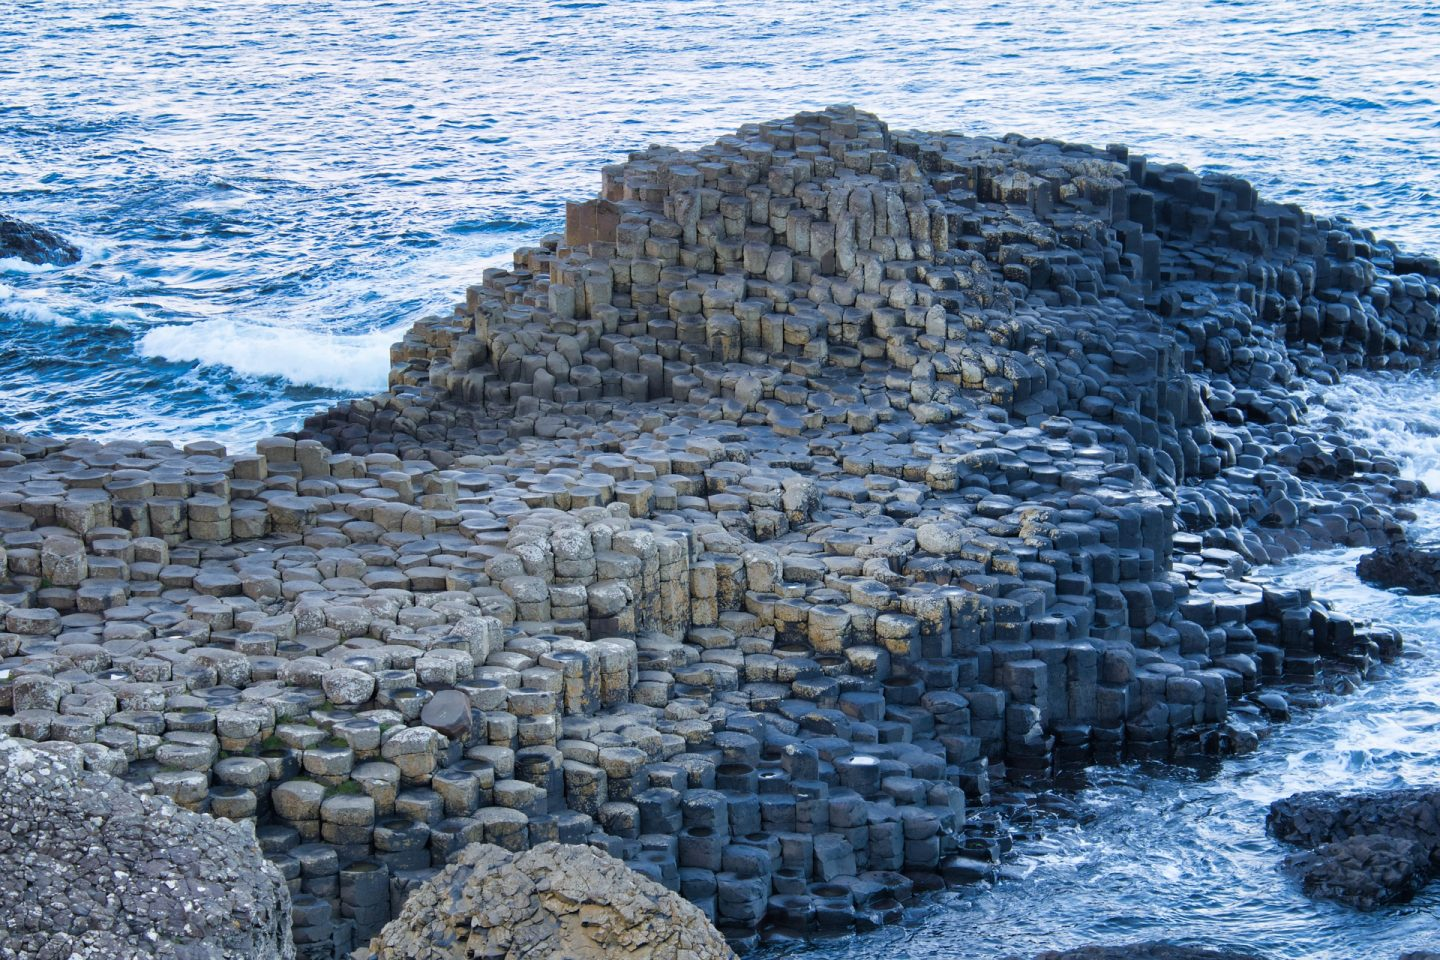 5 TIPS FOR VISITING THE GIANT'S CAUSEWAY